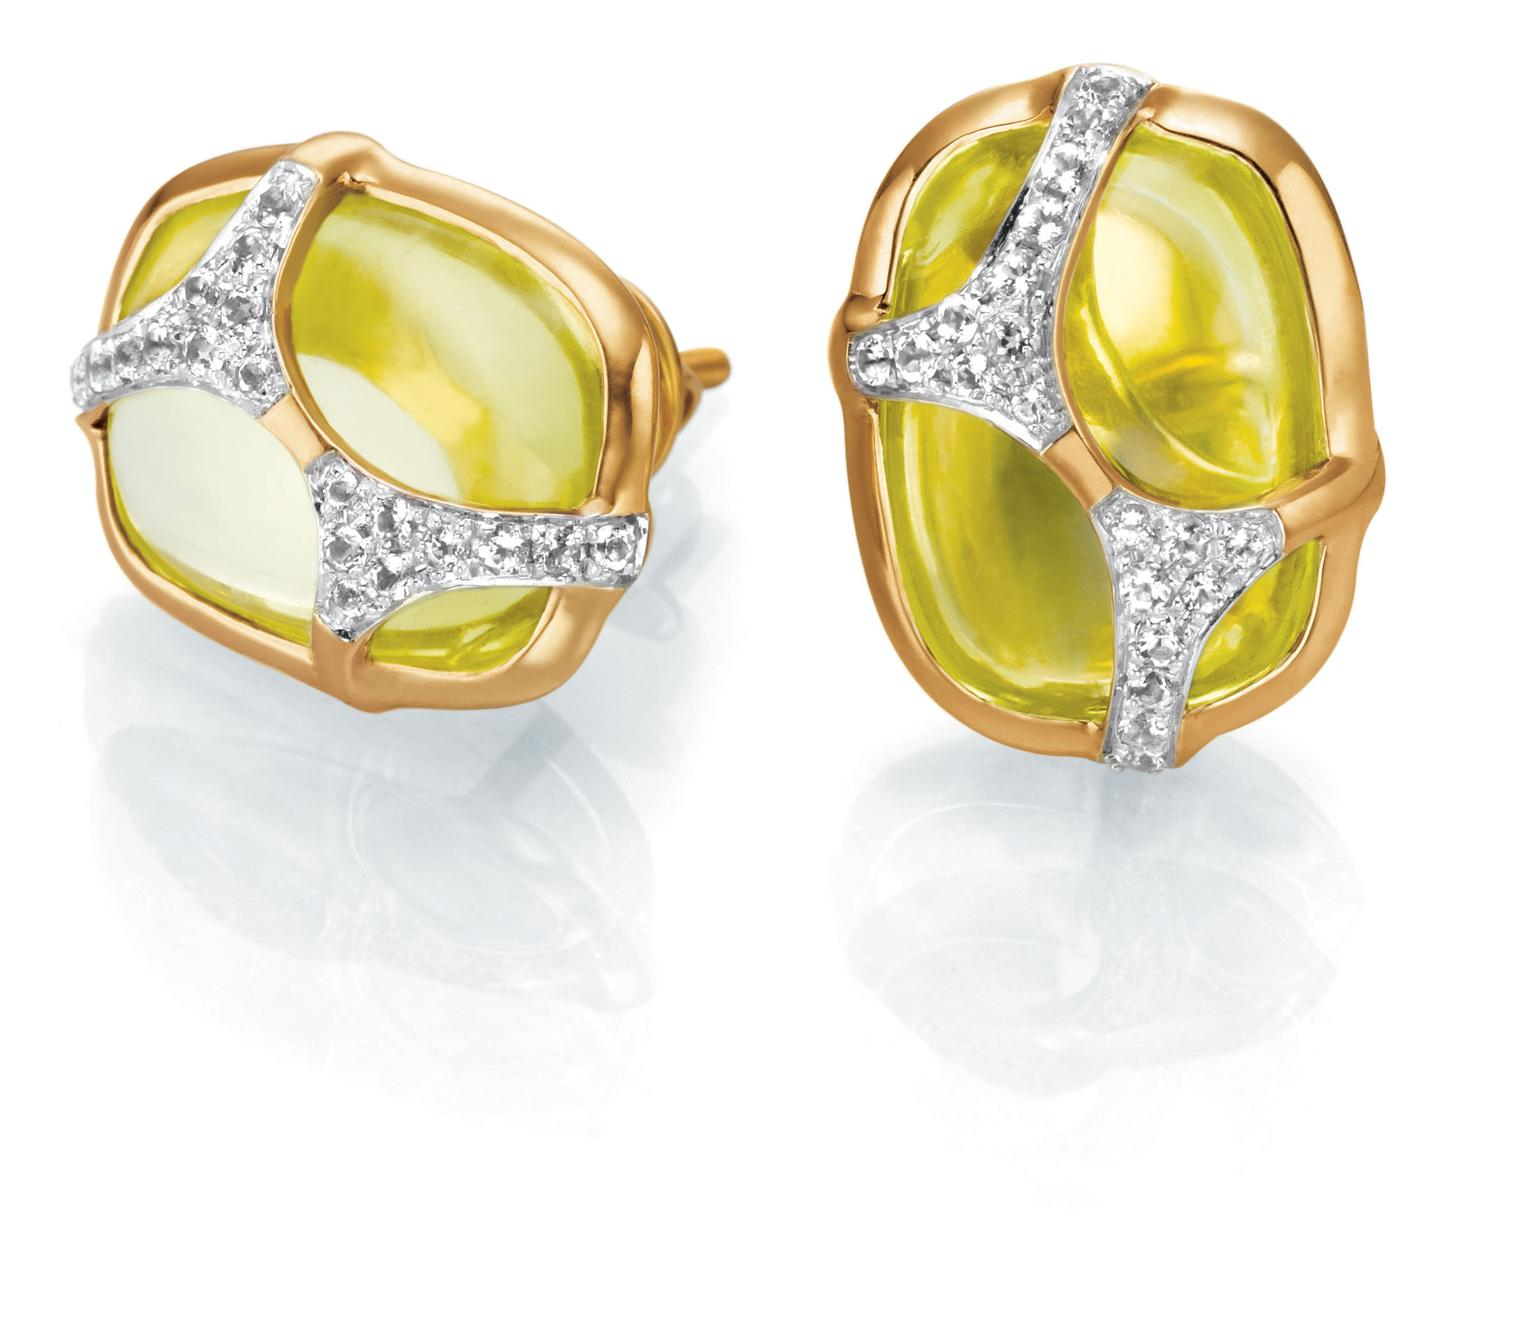 IVA 2 gold ear studs with peridots and diamonds   Tanishq   The ...